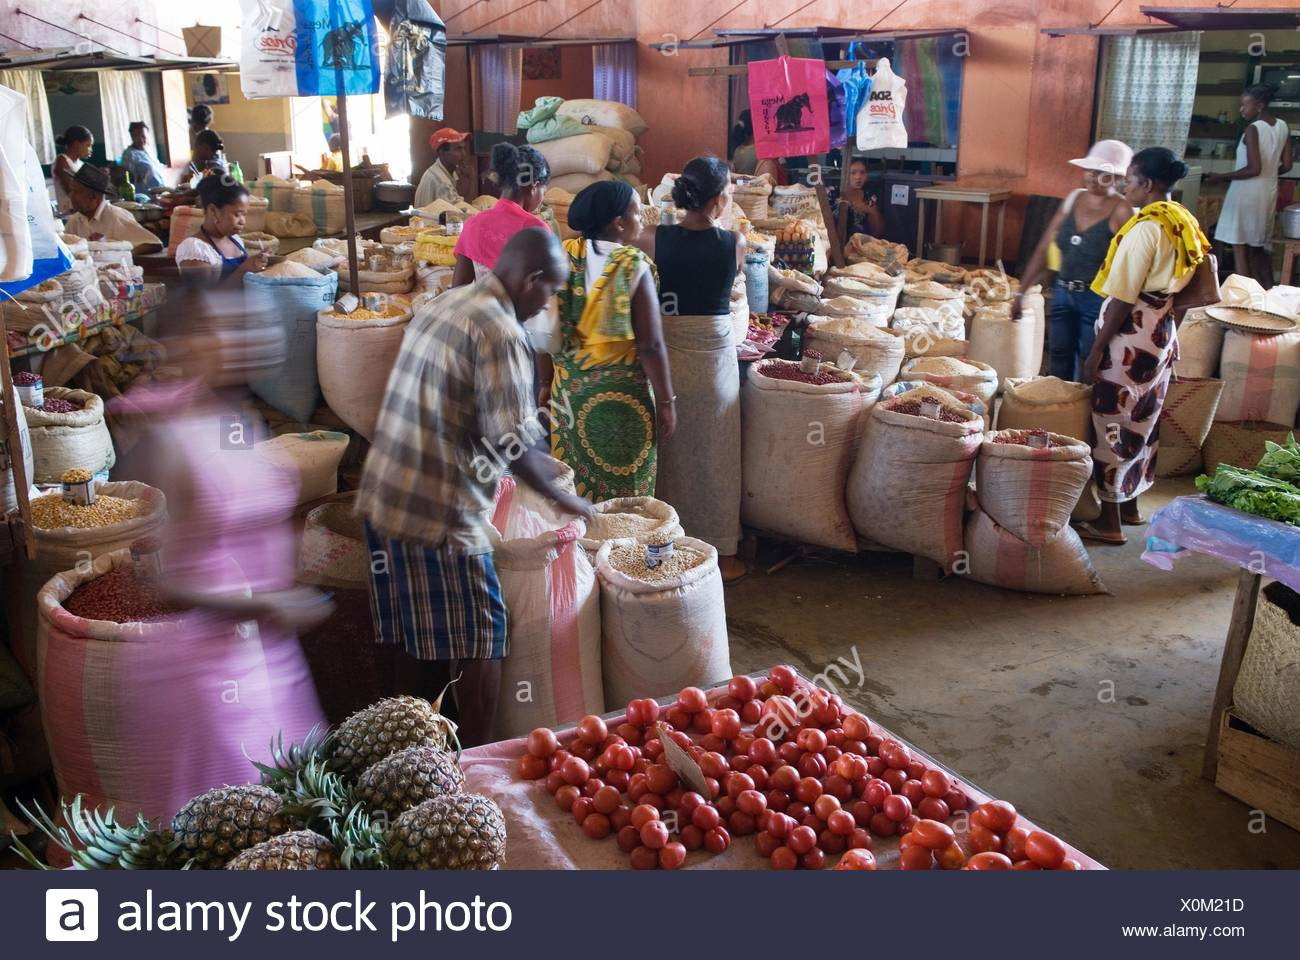 market hall of Hell-Ville Andoany, Nosy Be island, Republic of Madagascar, Indian Ocean - Stock Image